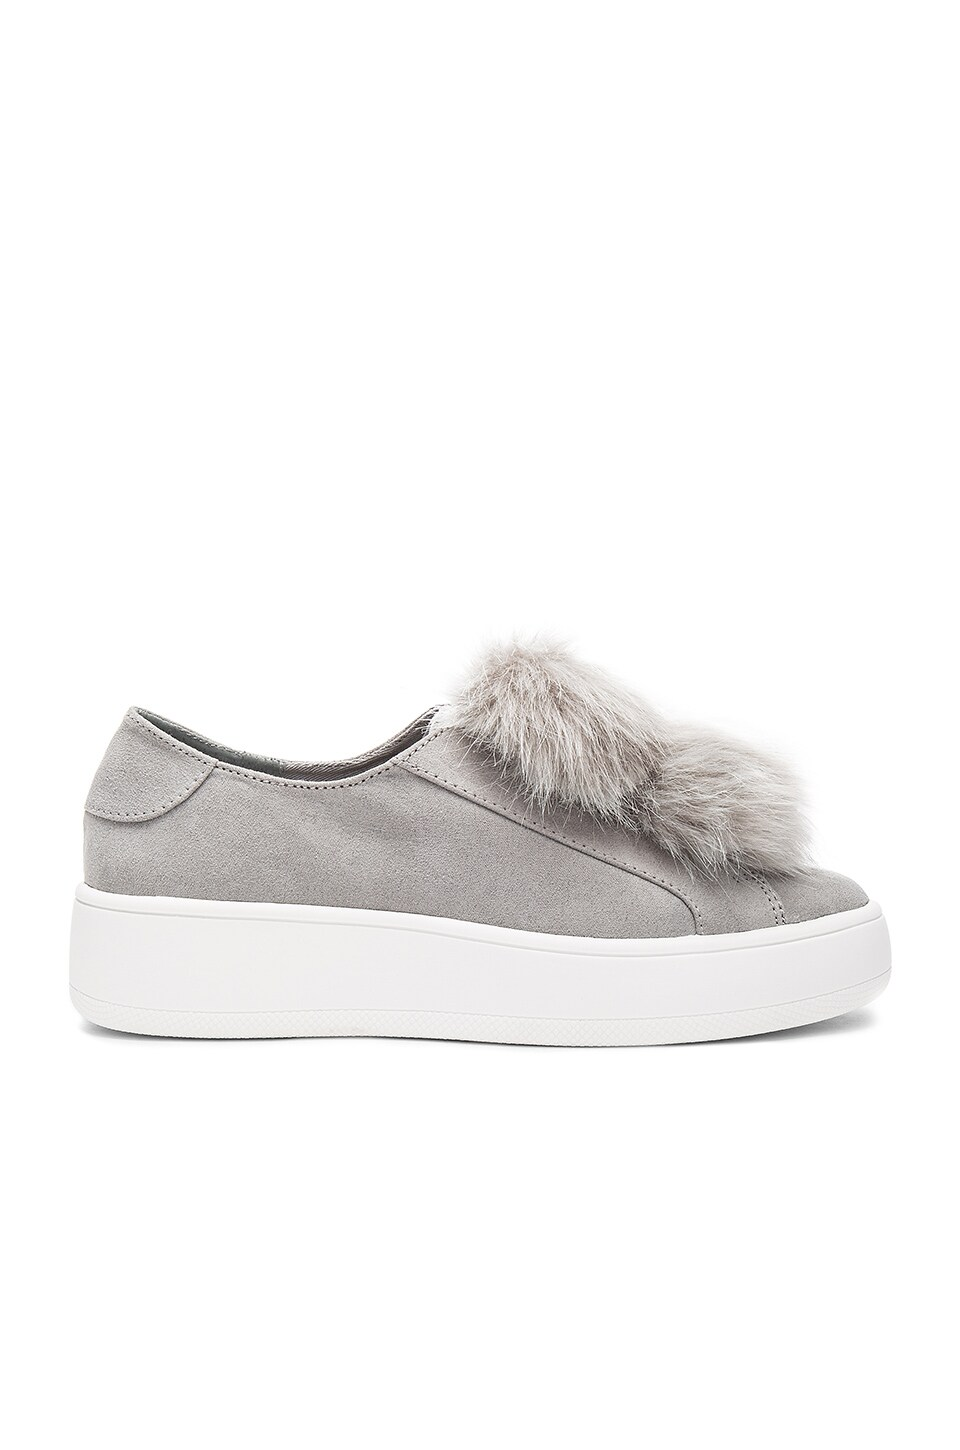 Steve Madden Bryanne Faux Fur Sneaker in Grey Multi